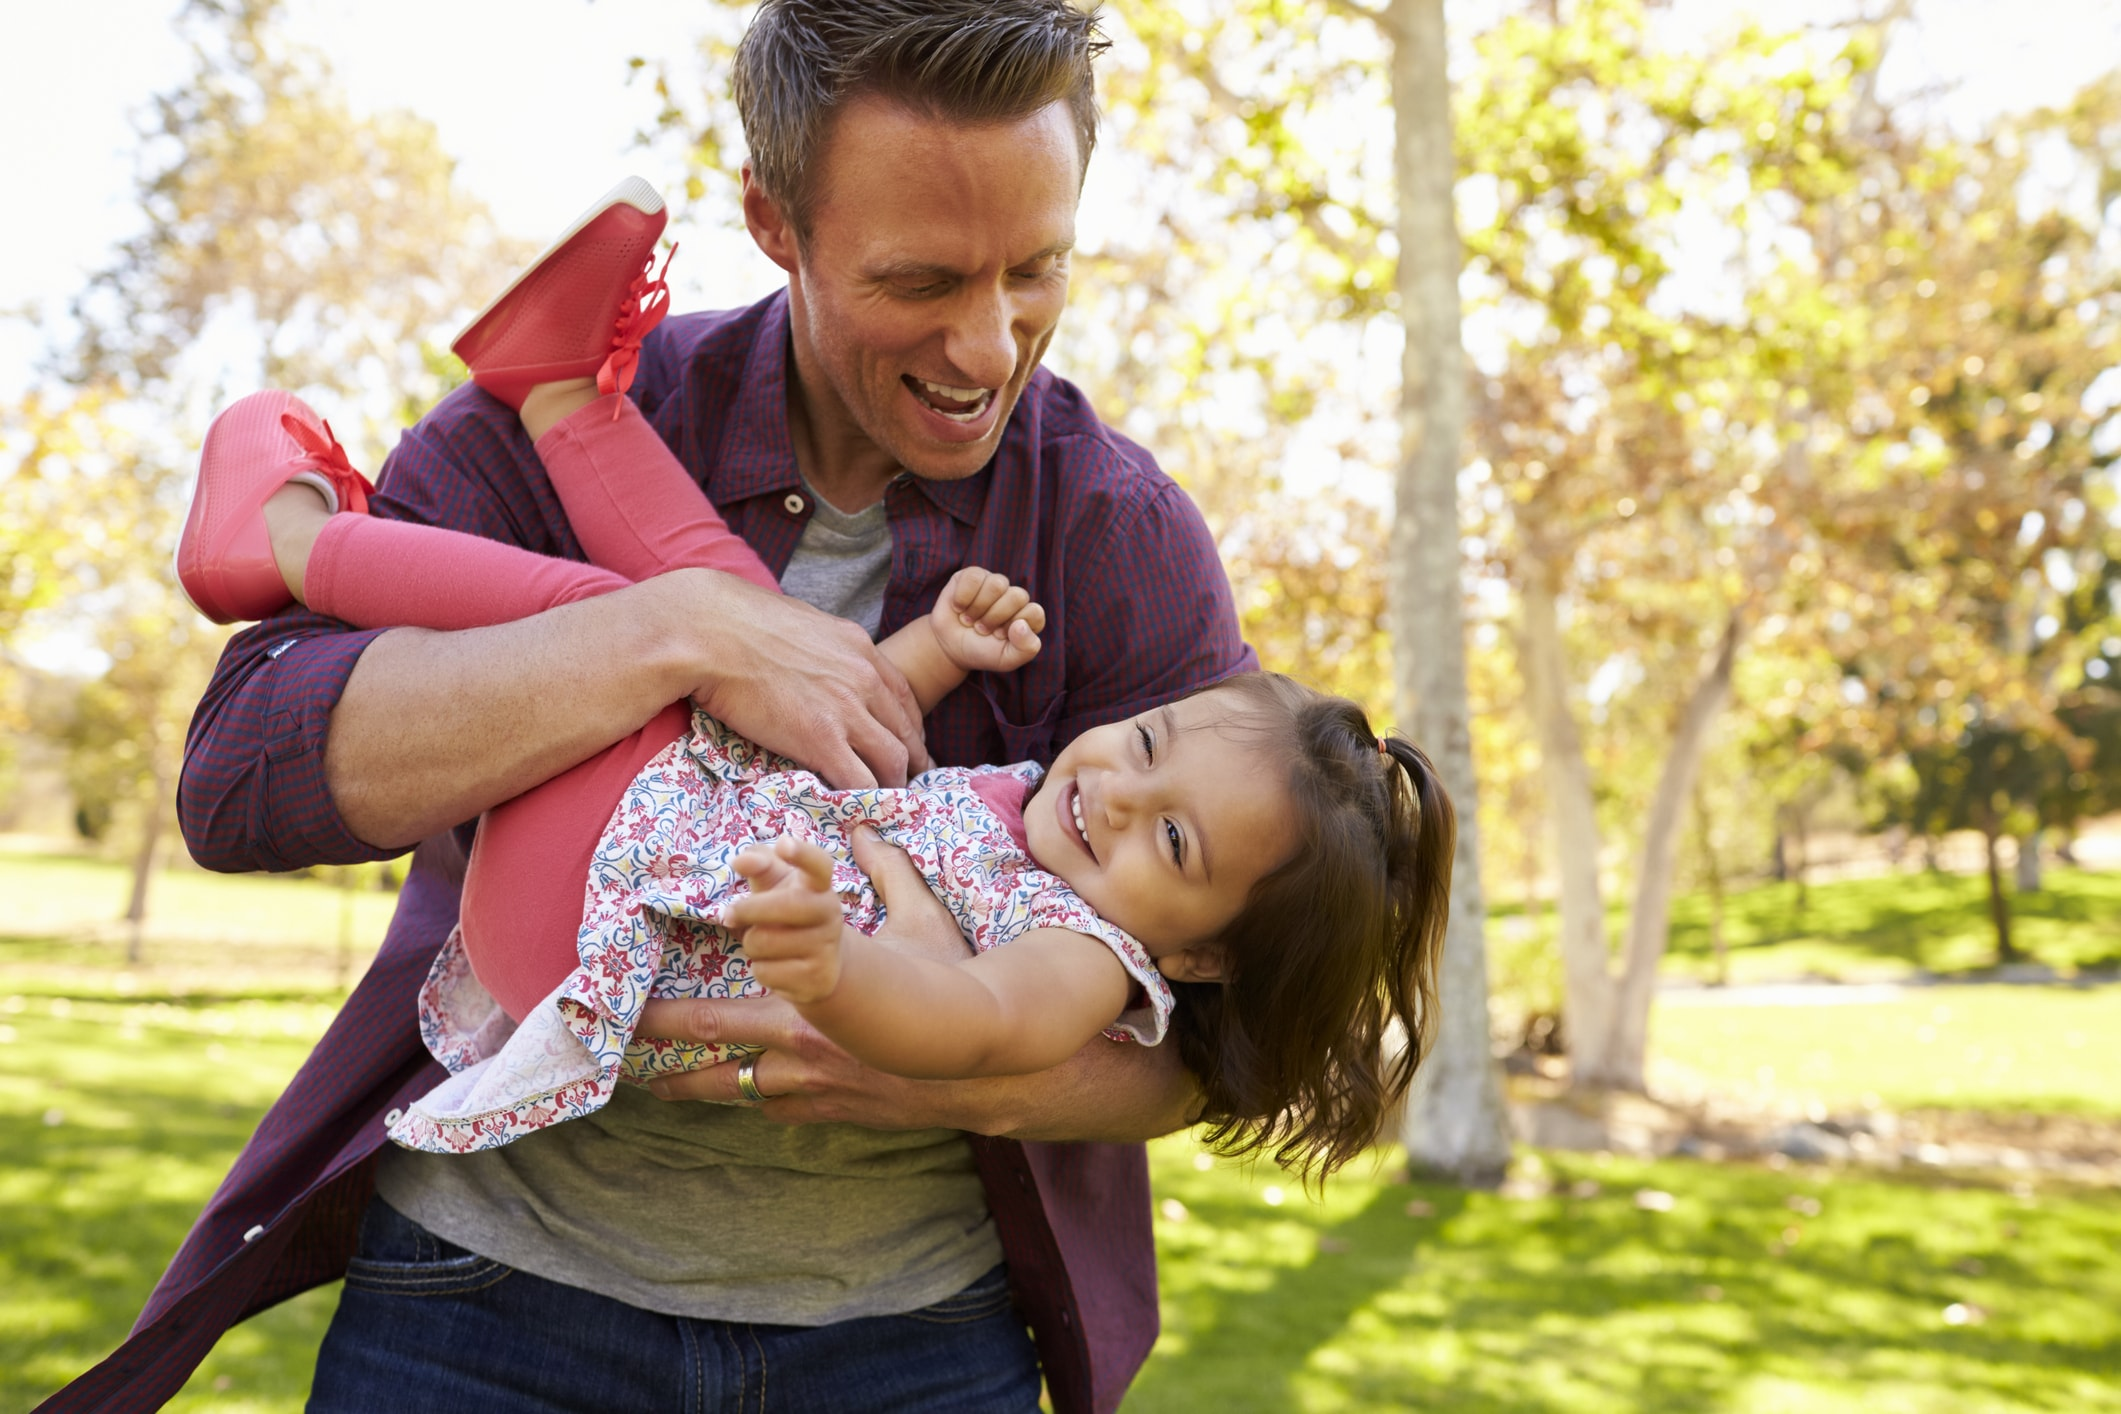 Smiling man holding his laughing daughter in his arms